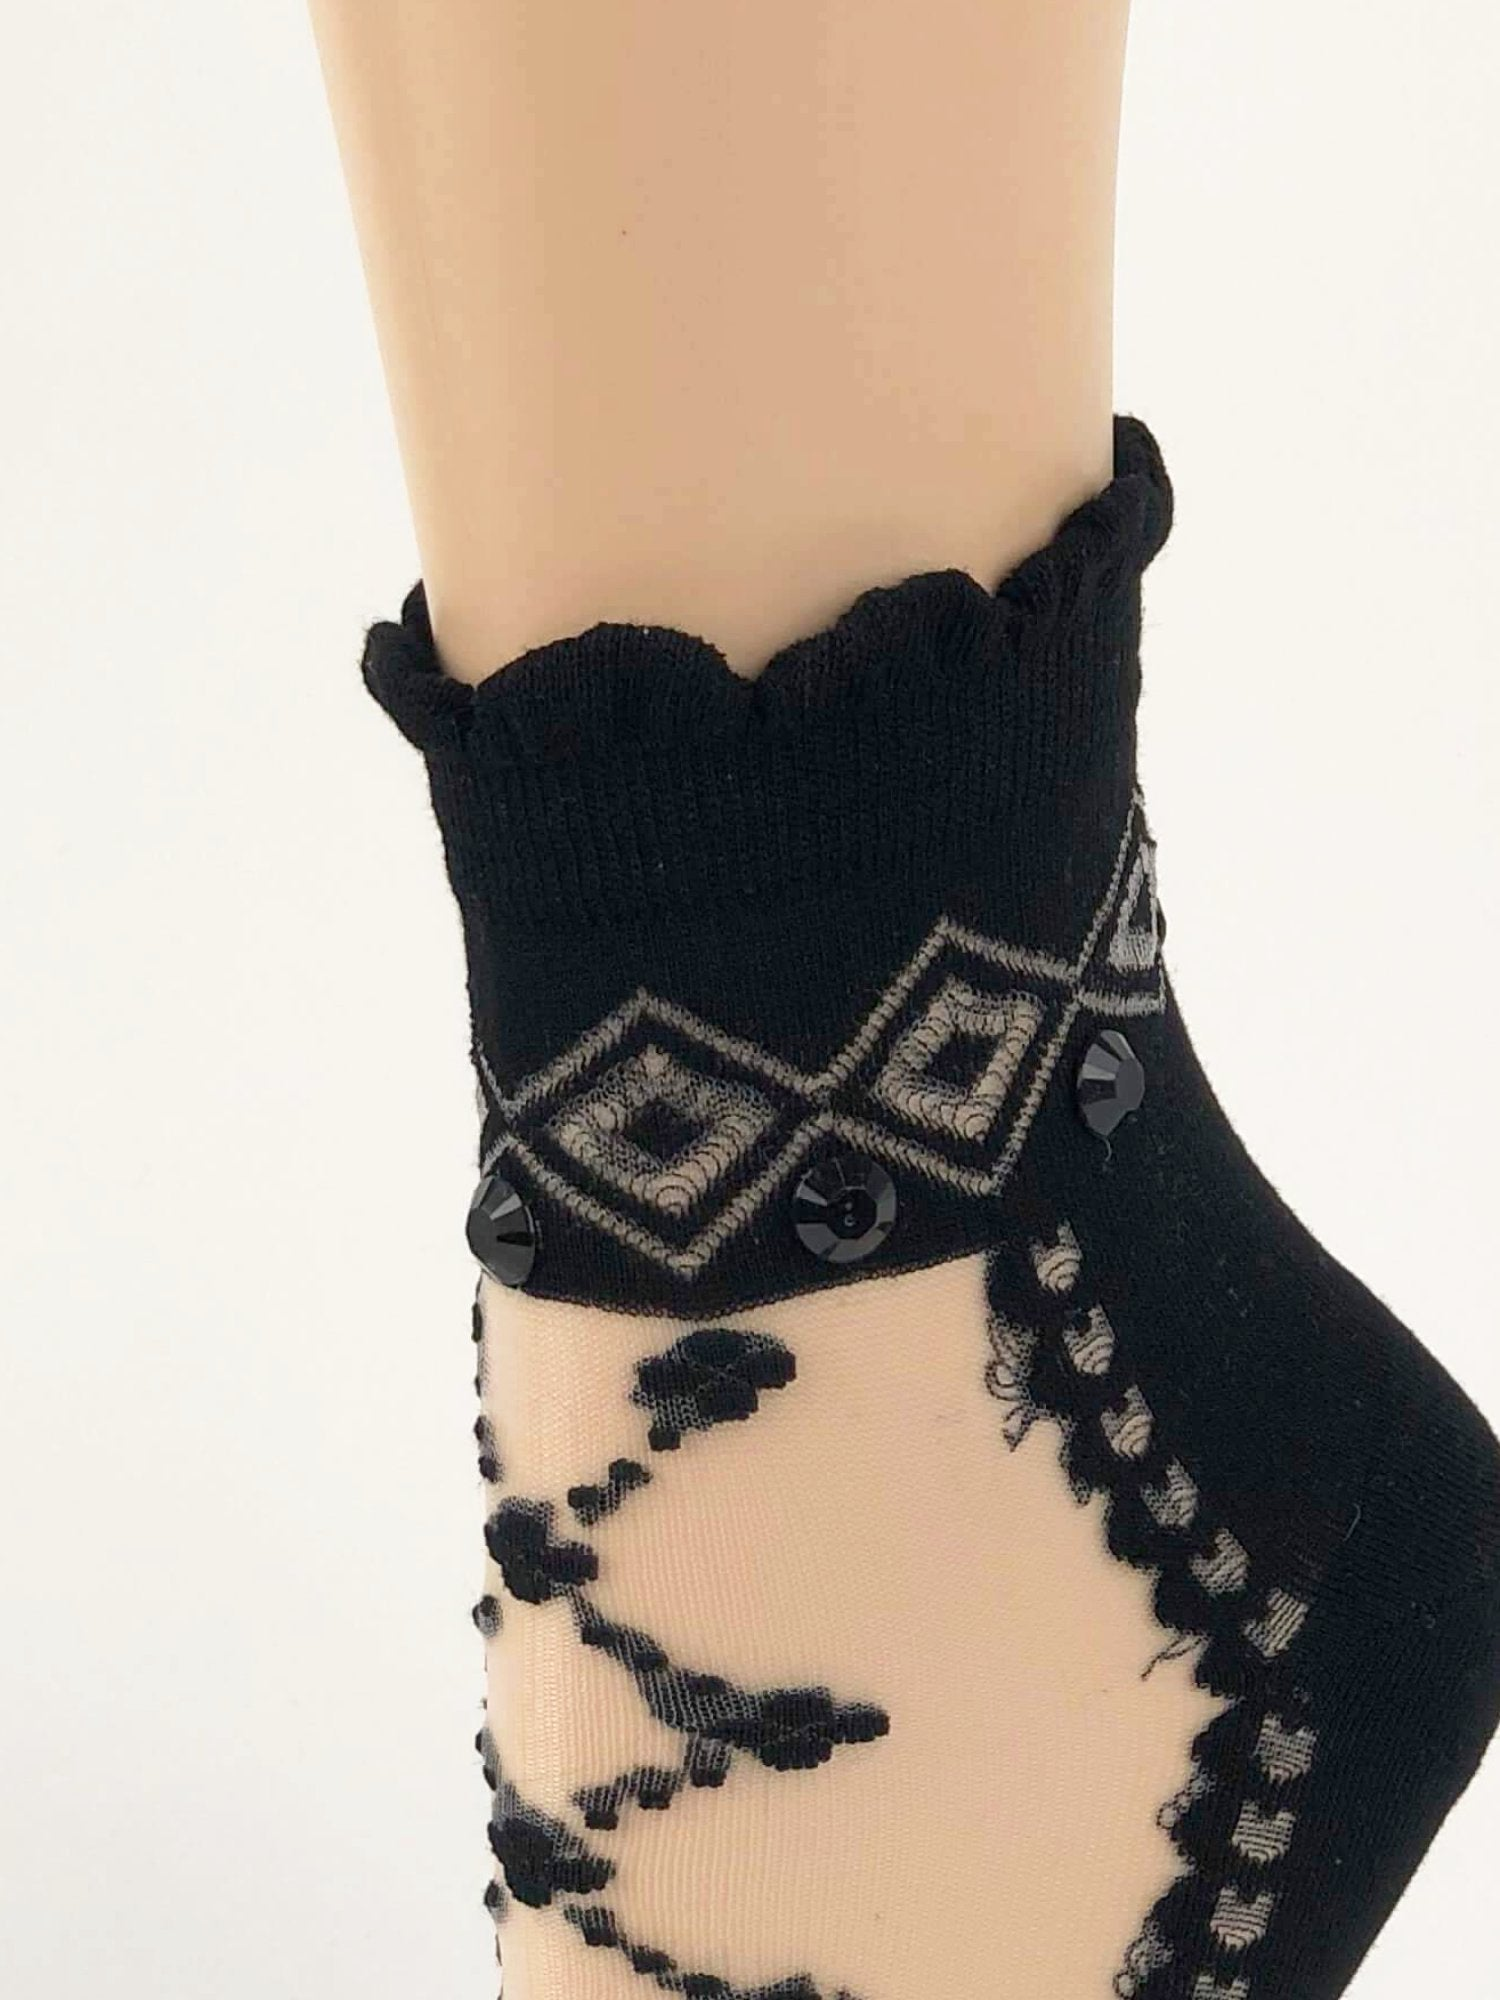 Black Criss-Cross Patterned Sheer Socks - Global Trendz Fashion®